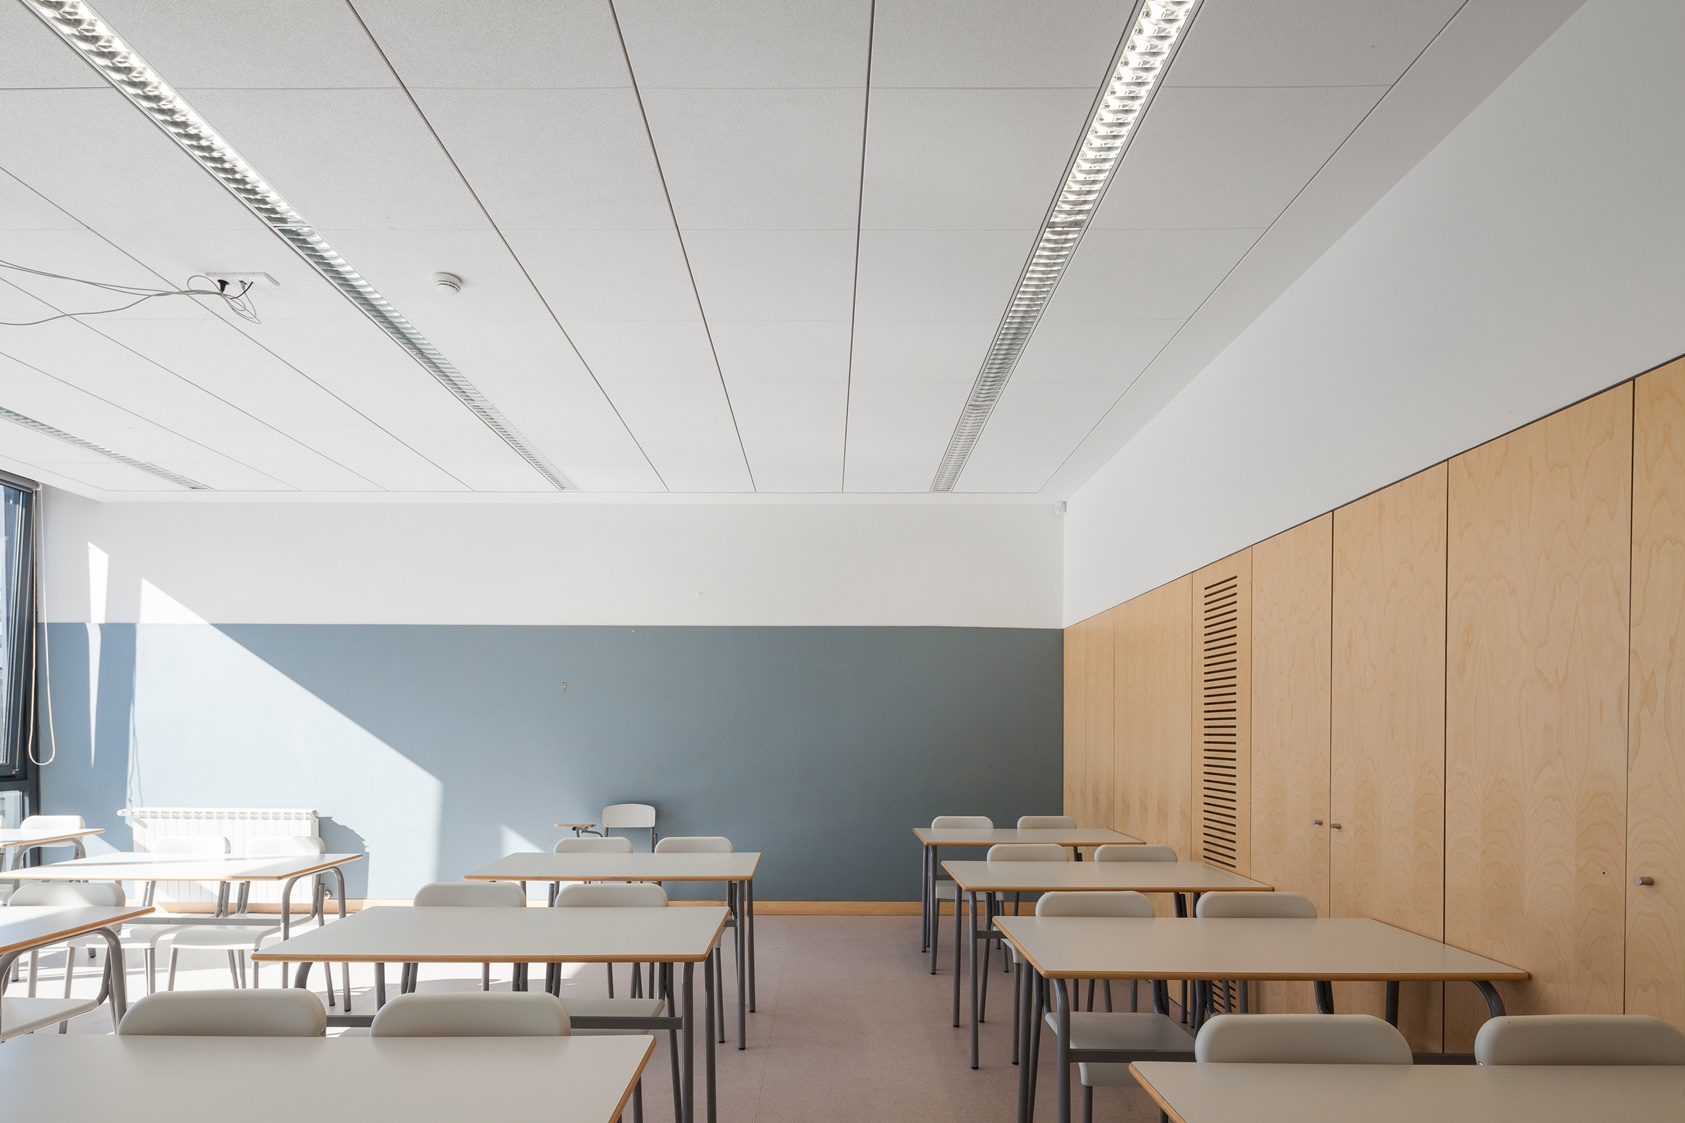 Ceiling Solutions for Education